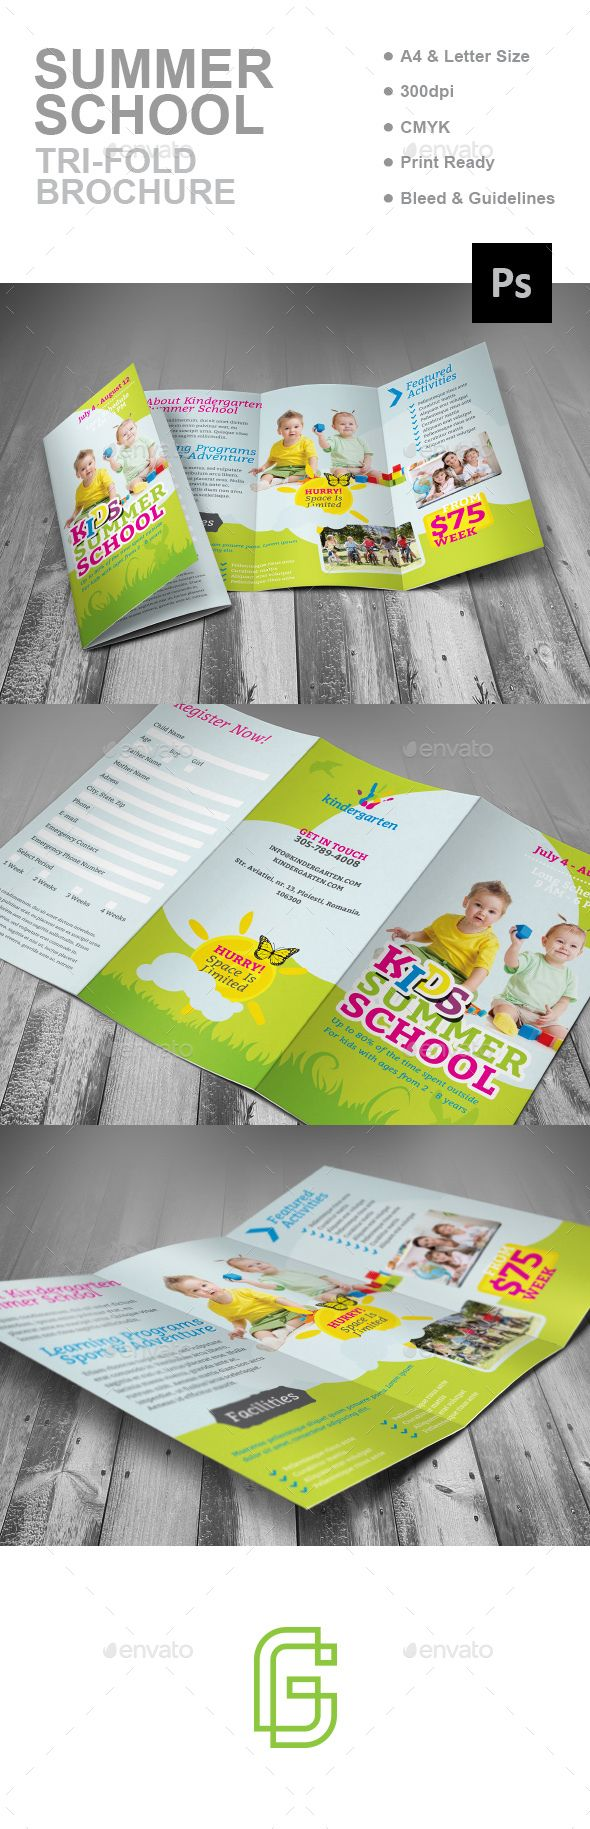 Best Brochure Template Images On Pinterest Brochures - Hp tri fold brochure template